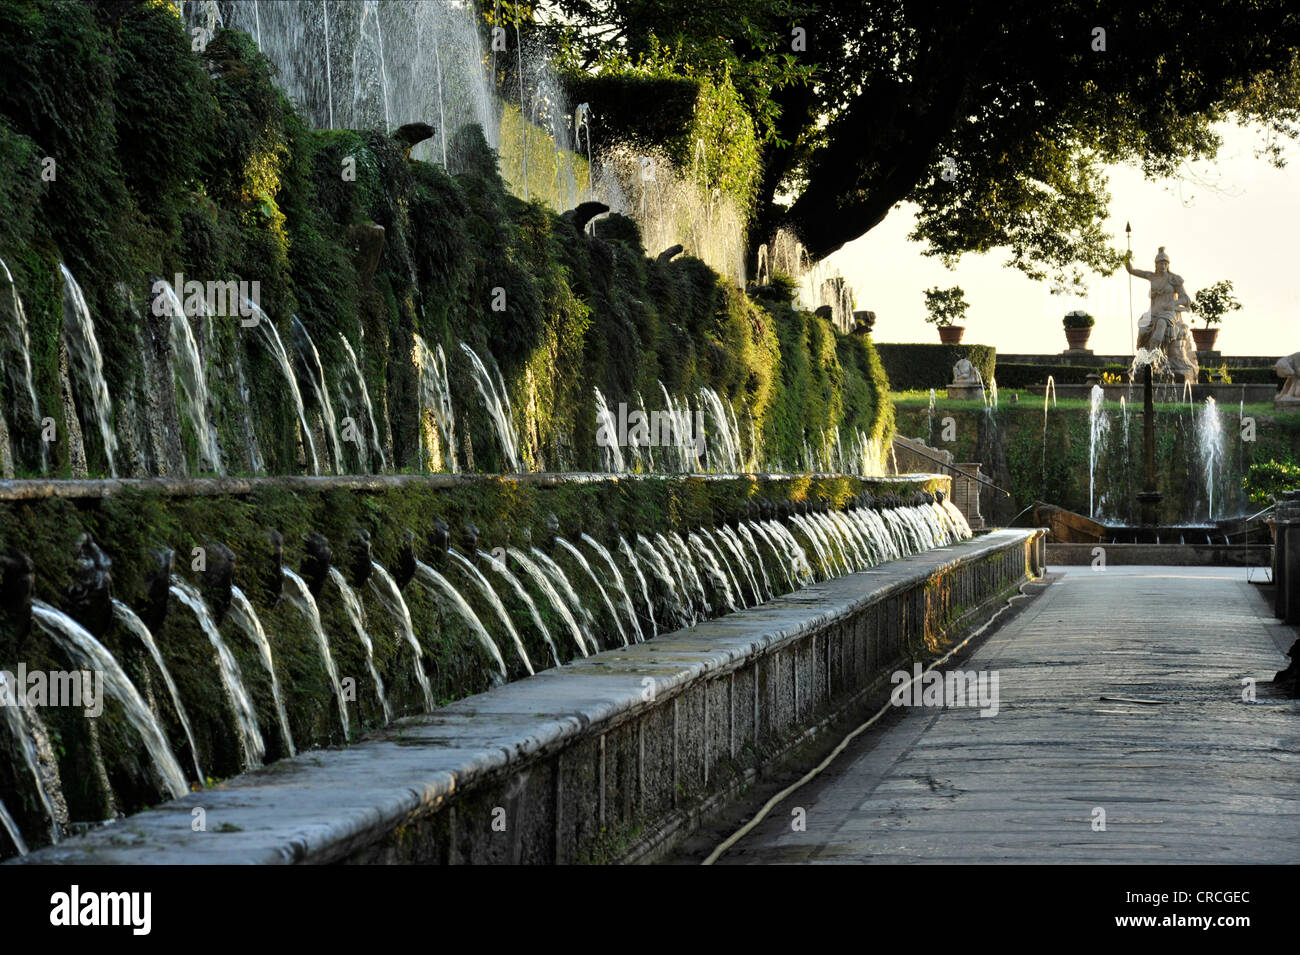 Viale delle Cento Fontane or Alley of the Hundred Fountains, Fontana della Rometta, Garden of the Villa d'Este - Stock Image